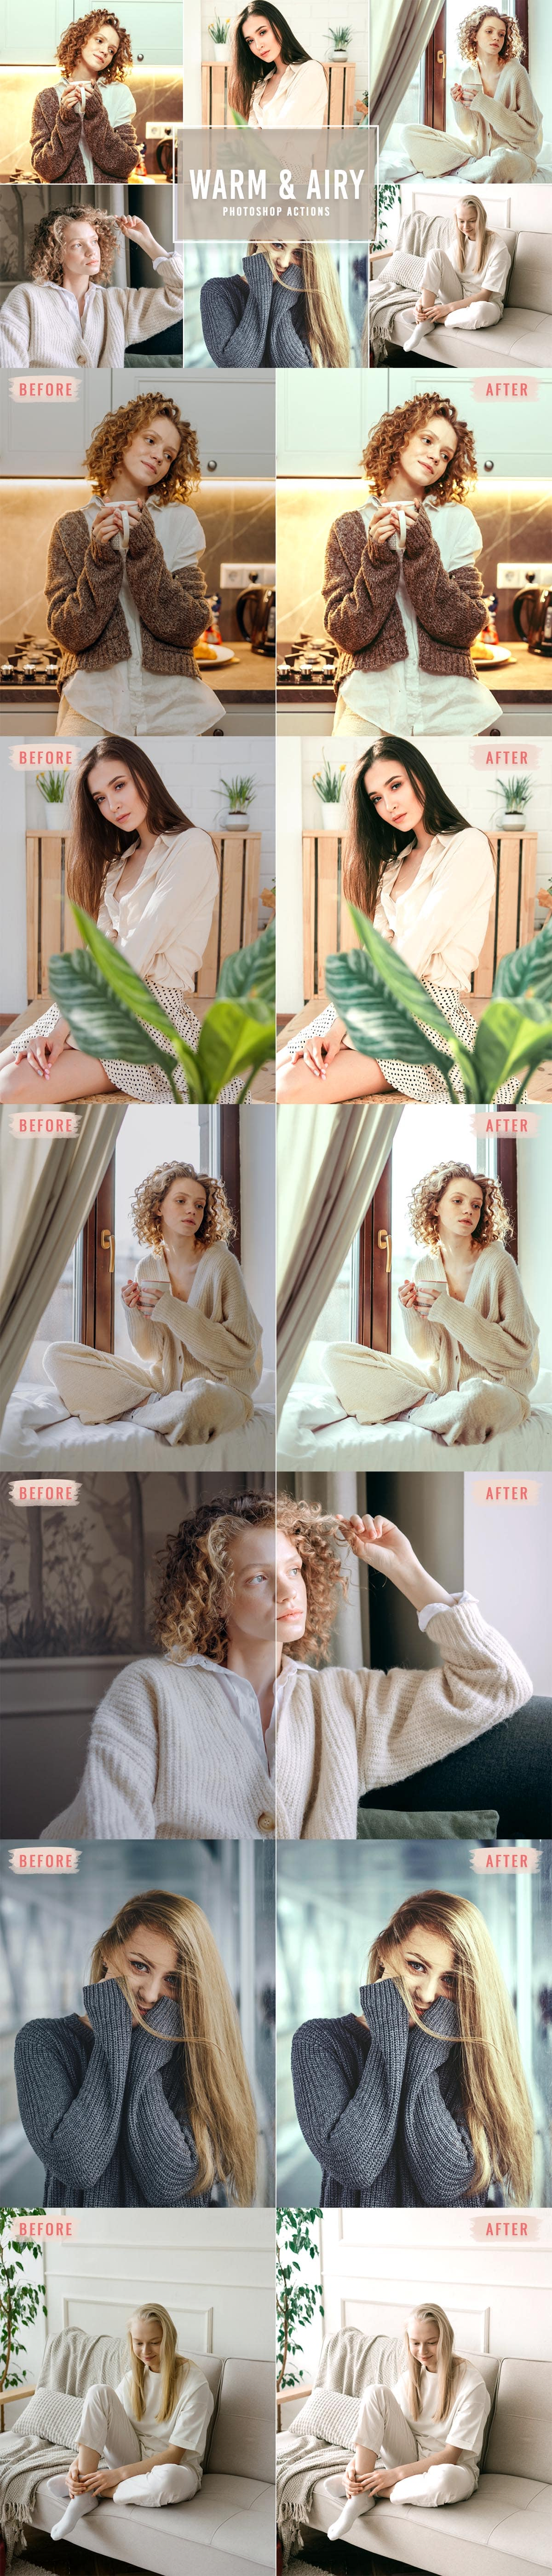 Free Warm & Airy Photoshop Actions